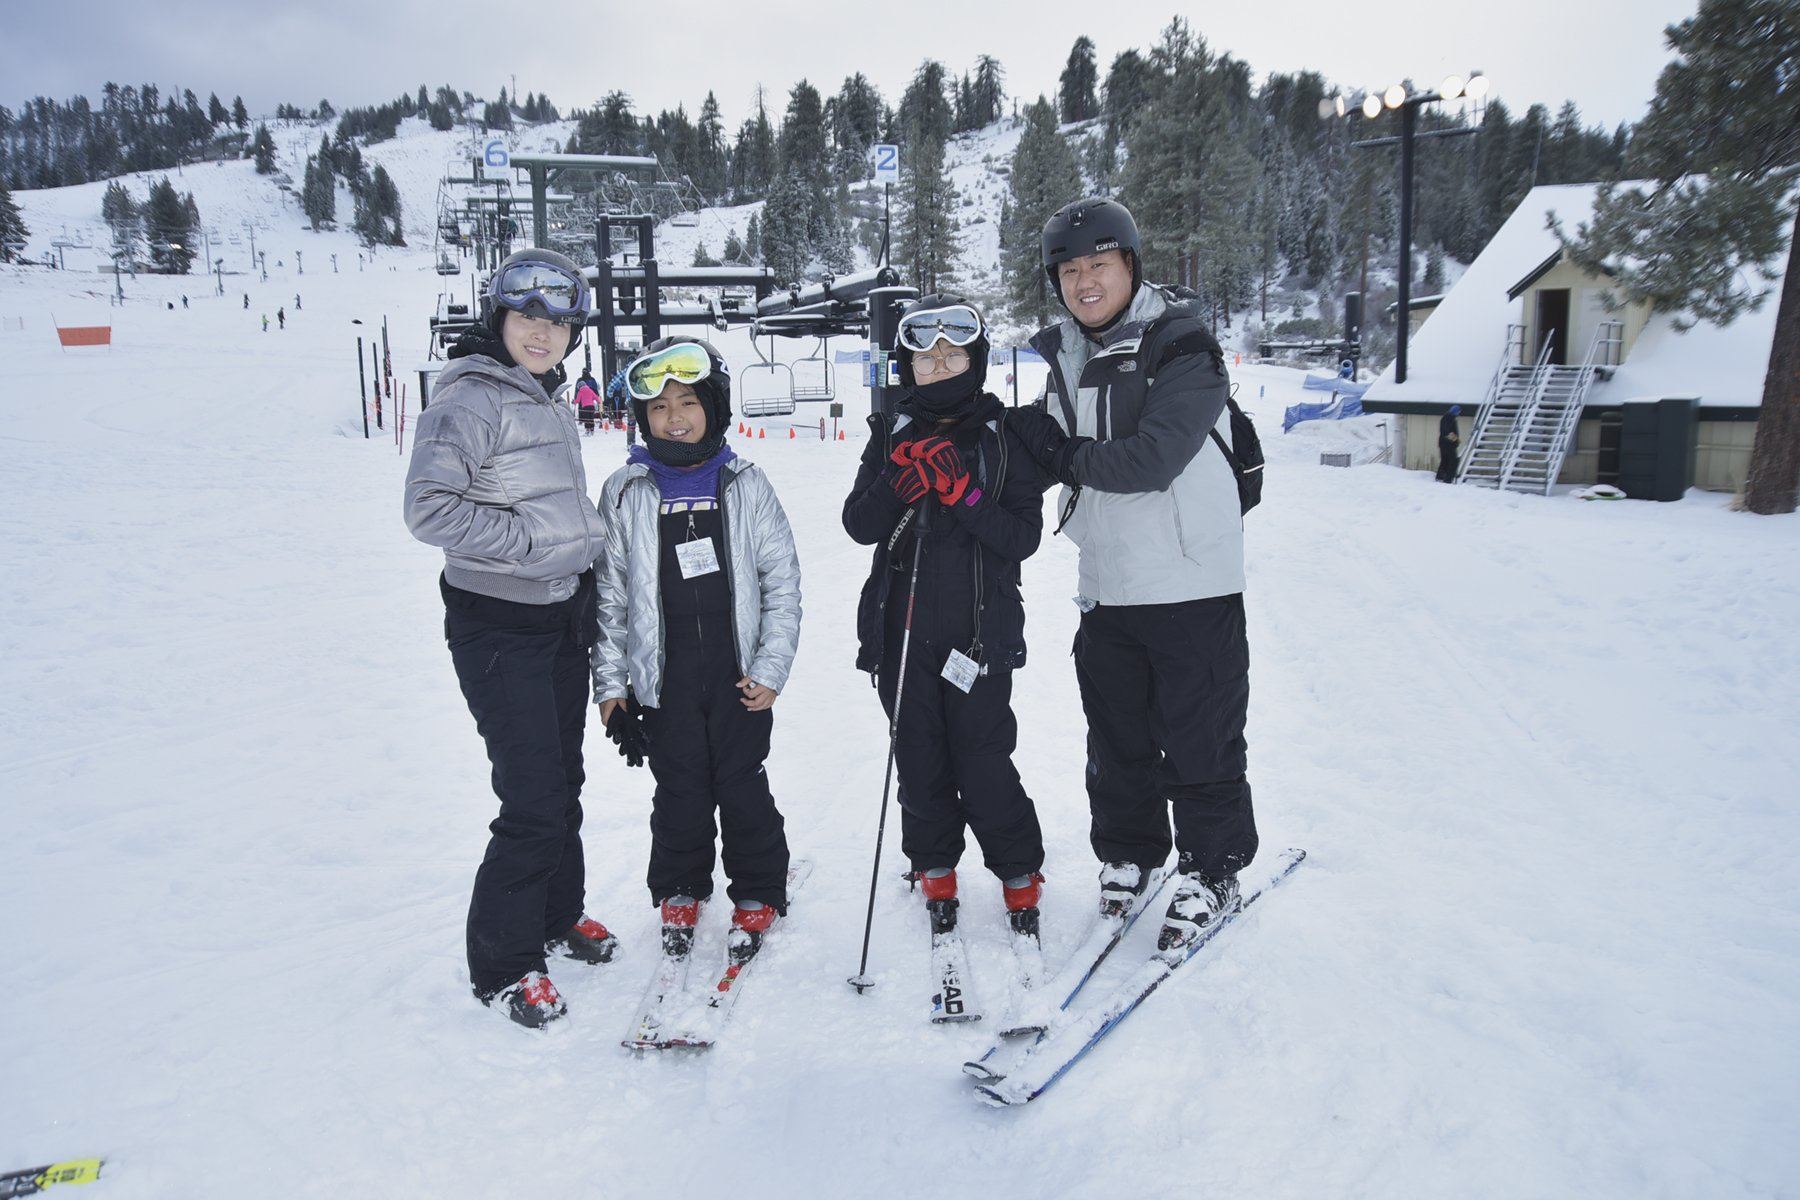 Two parents and two children pose with skis on in front of ski lifts